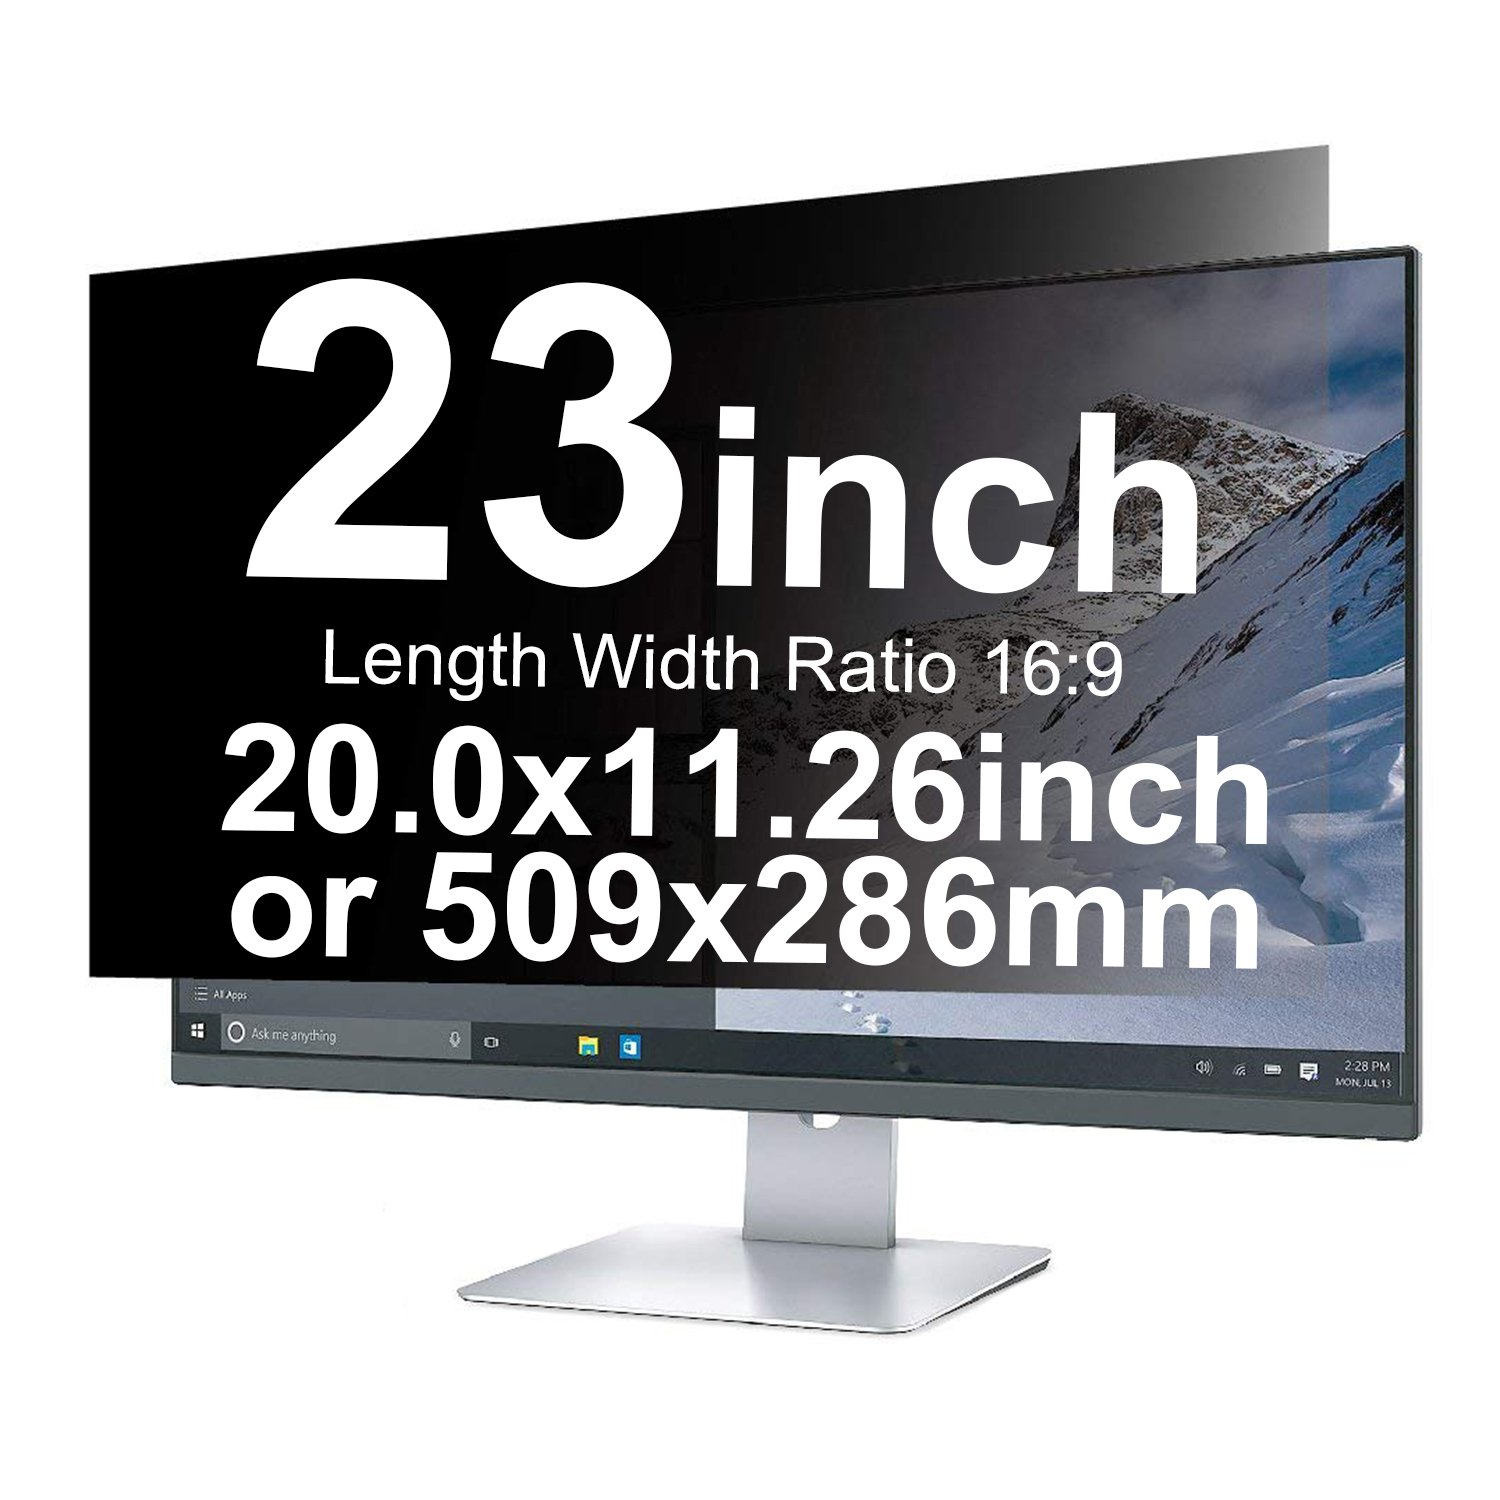 Xianan 23 inch Anti-Glare Anti-Peeping Privacy Filters 20x11.26inch/509x286mm 16:9 Display Filter Radiation Protection Computer Screen Protector Film